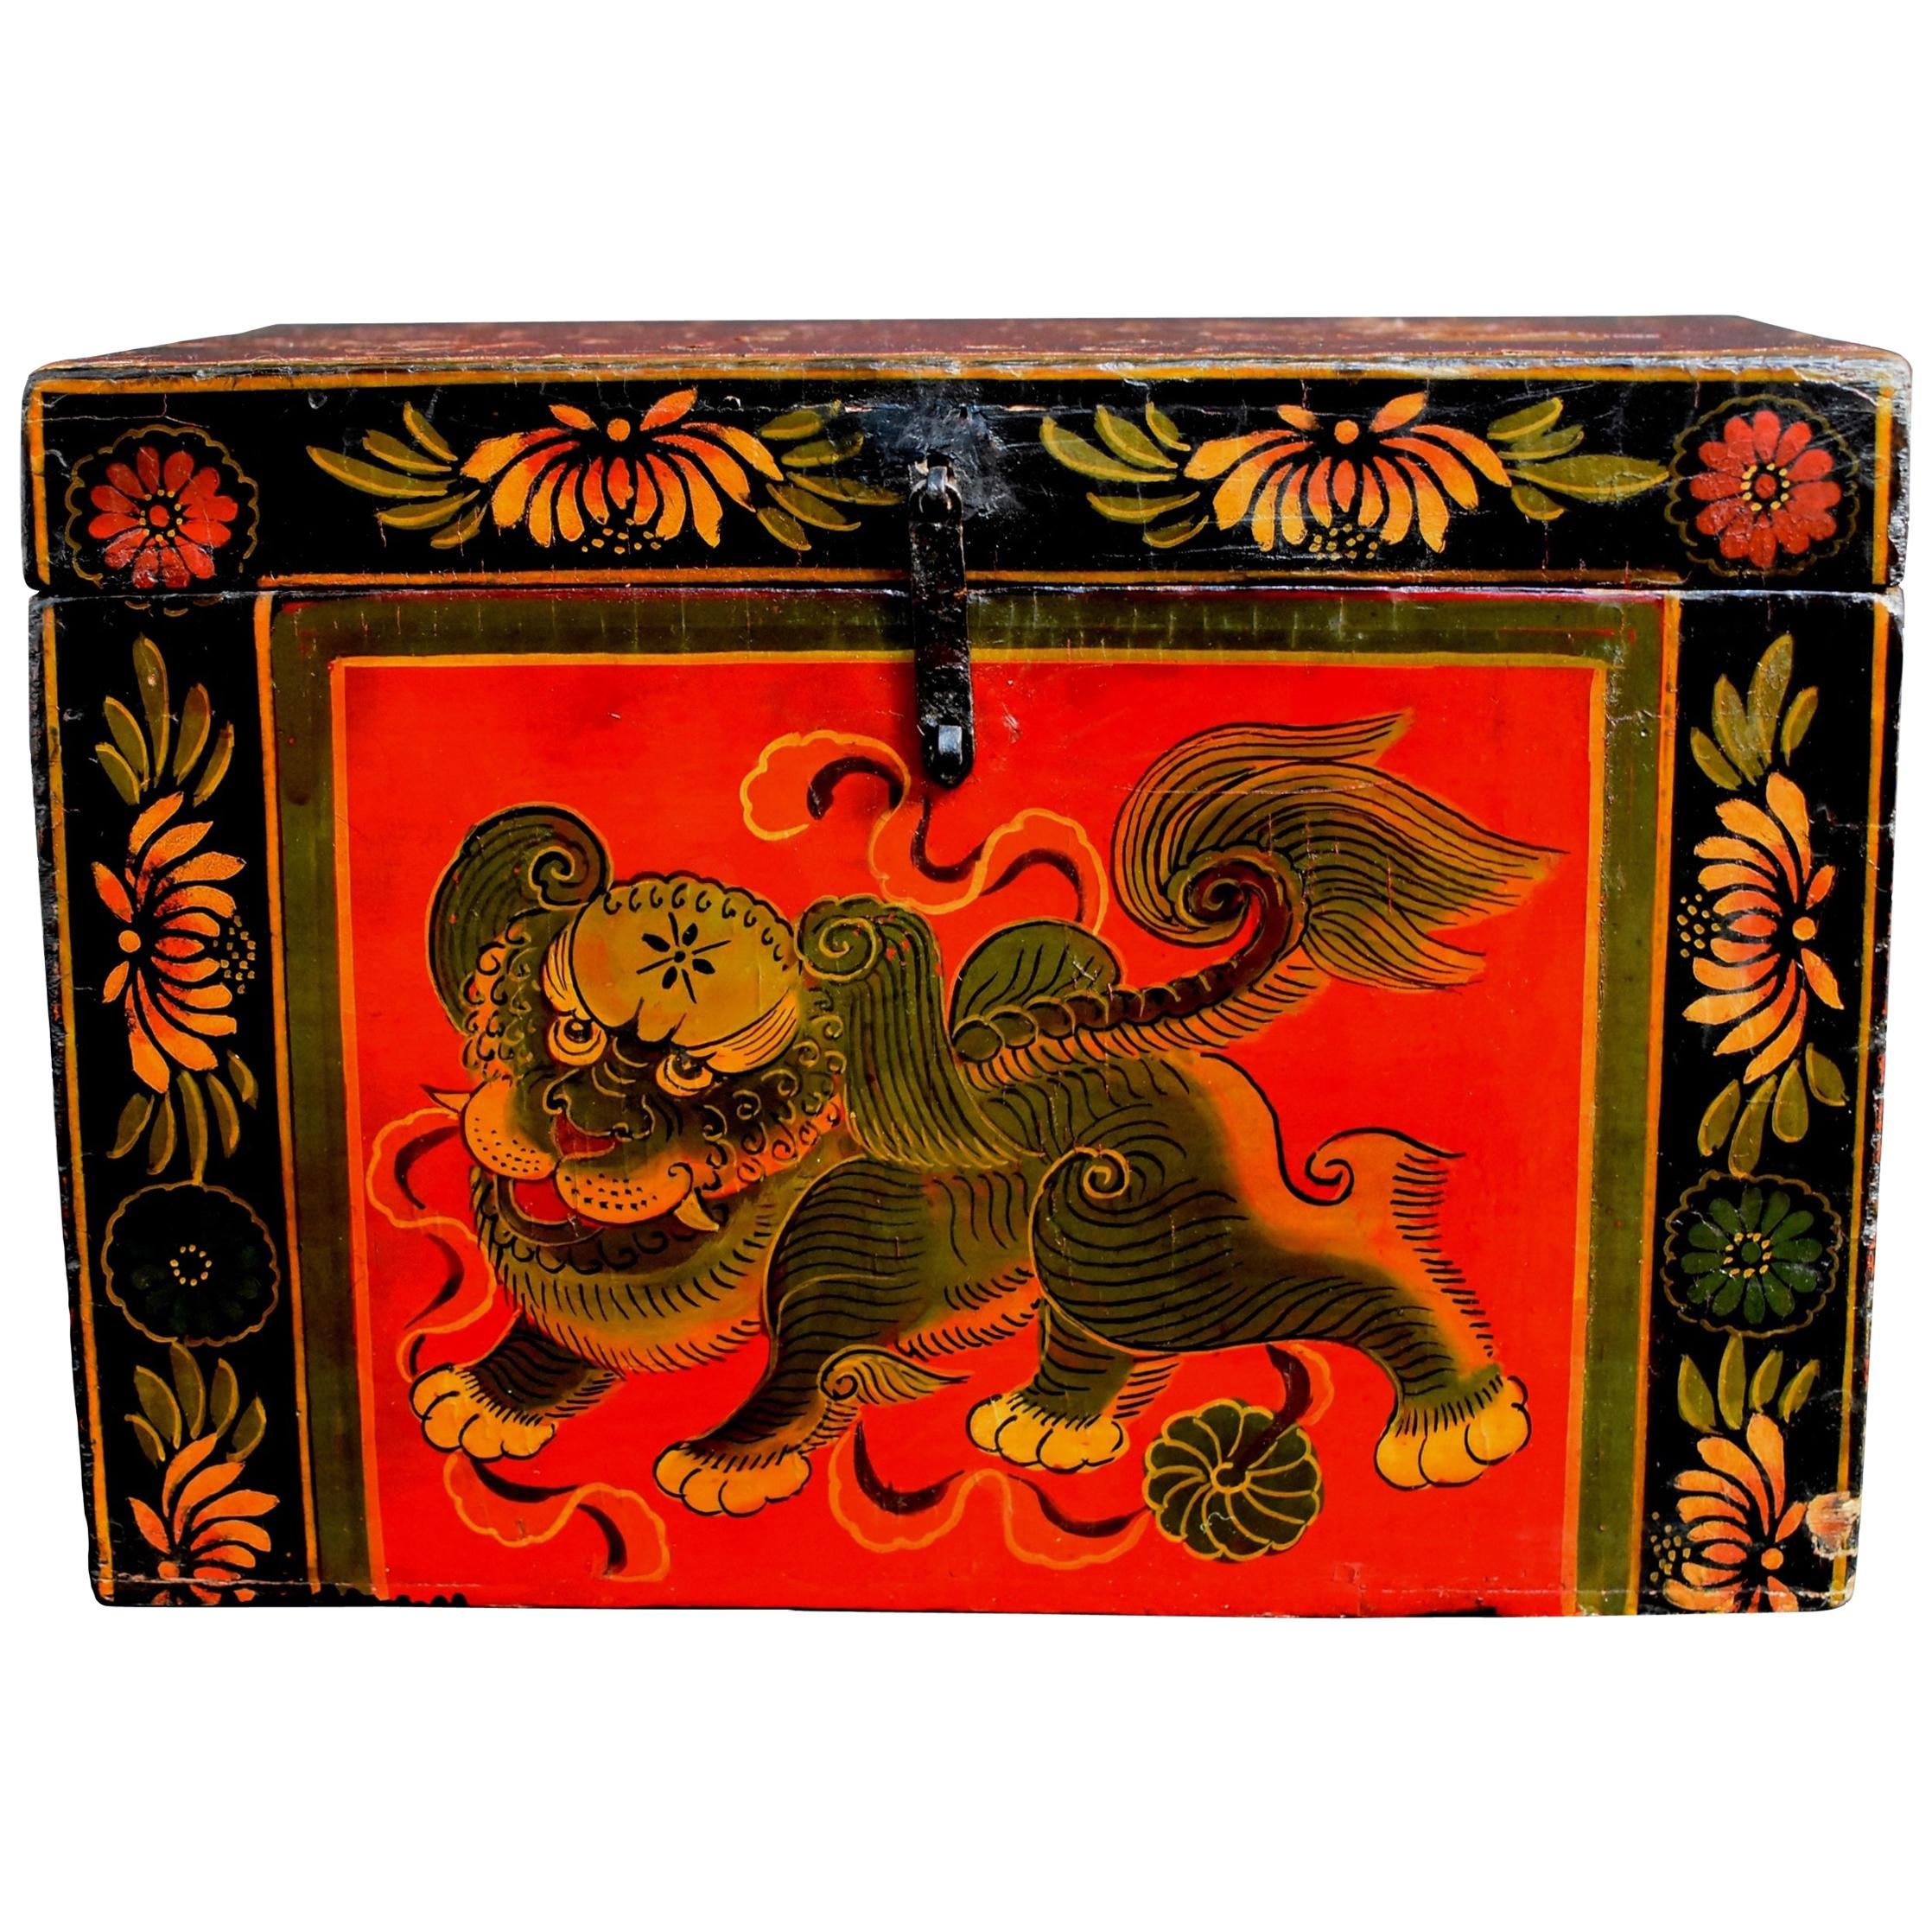 Tibetan Foo Dog Box Hand Painted Box 7